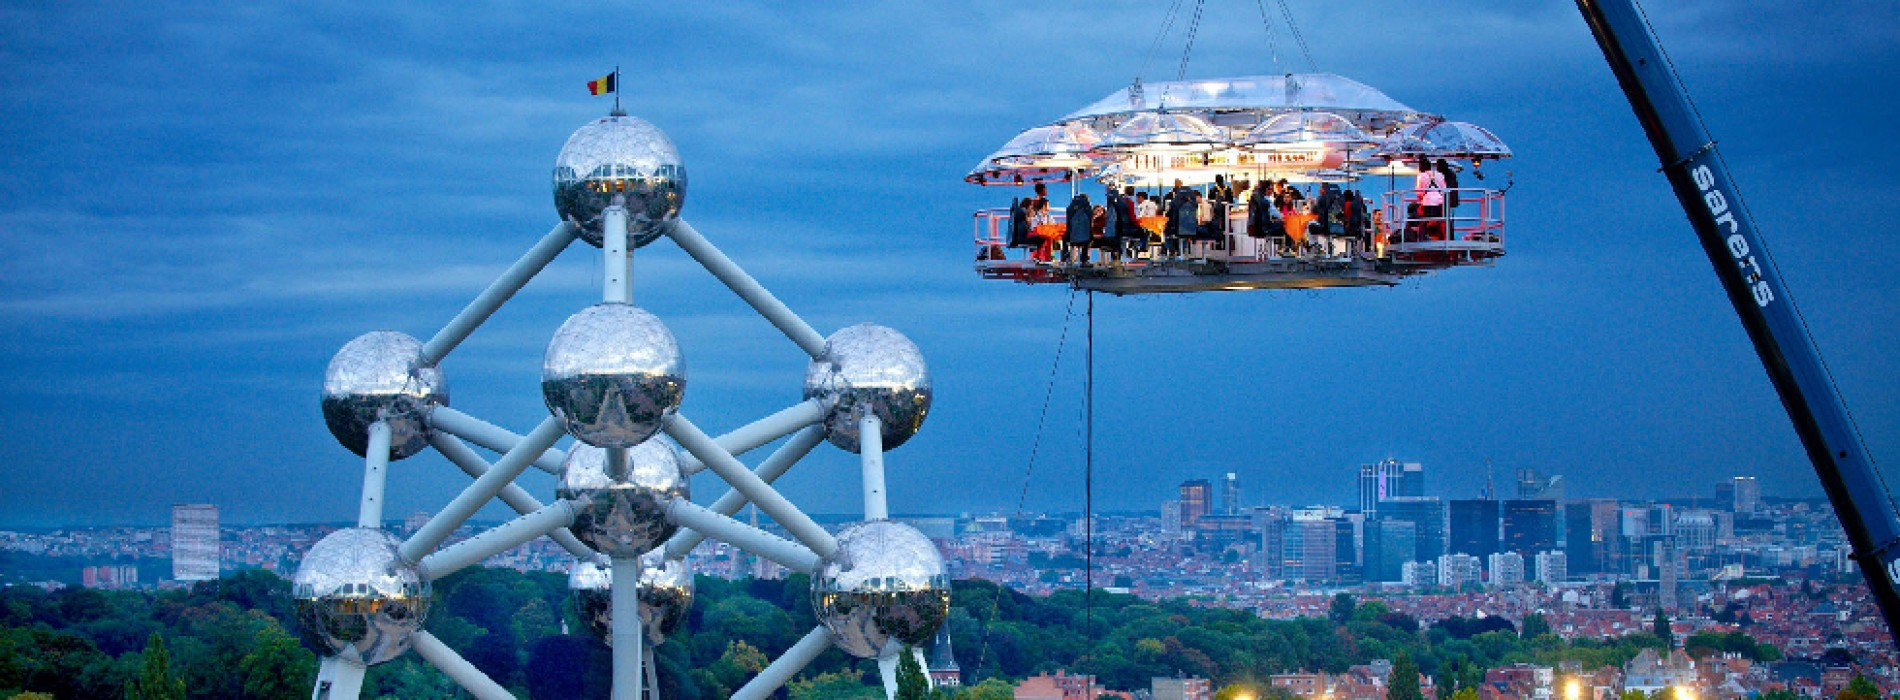 Dinner in the Sky by MONTE-CARLO